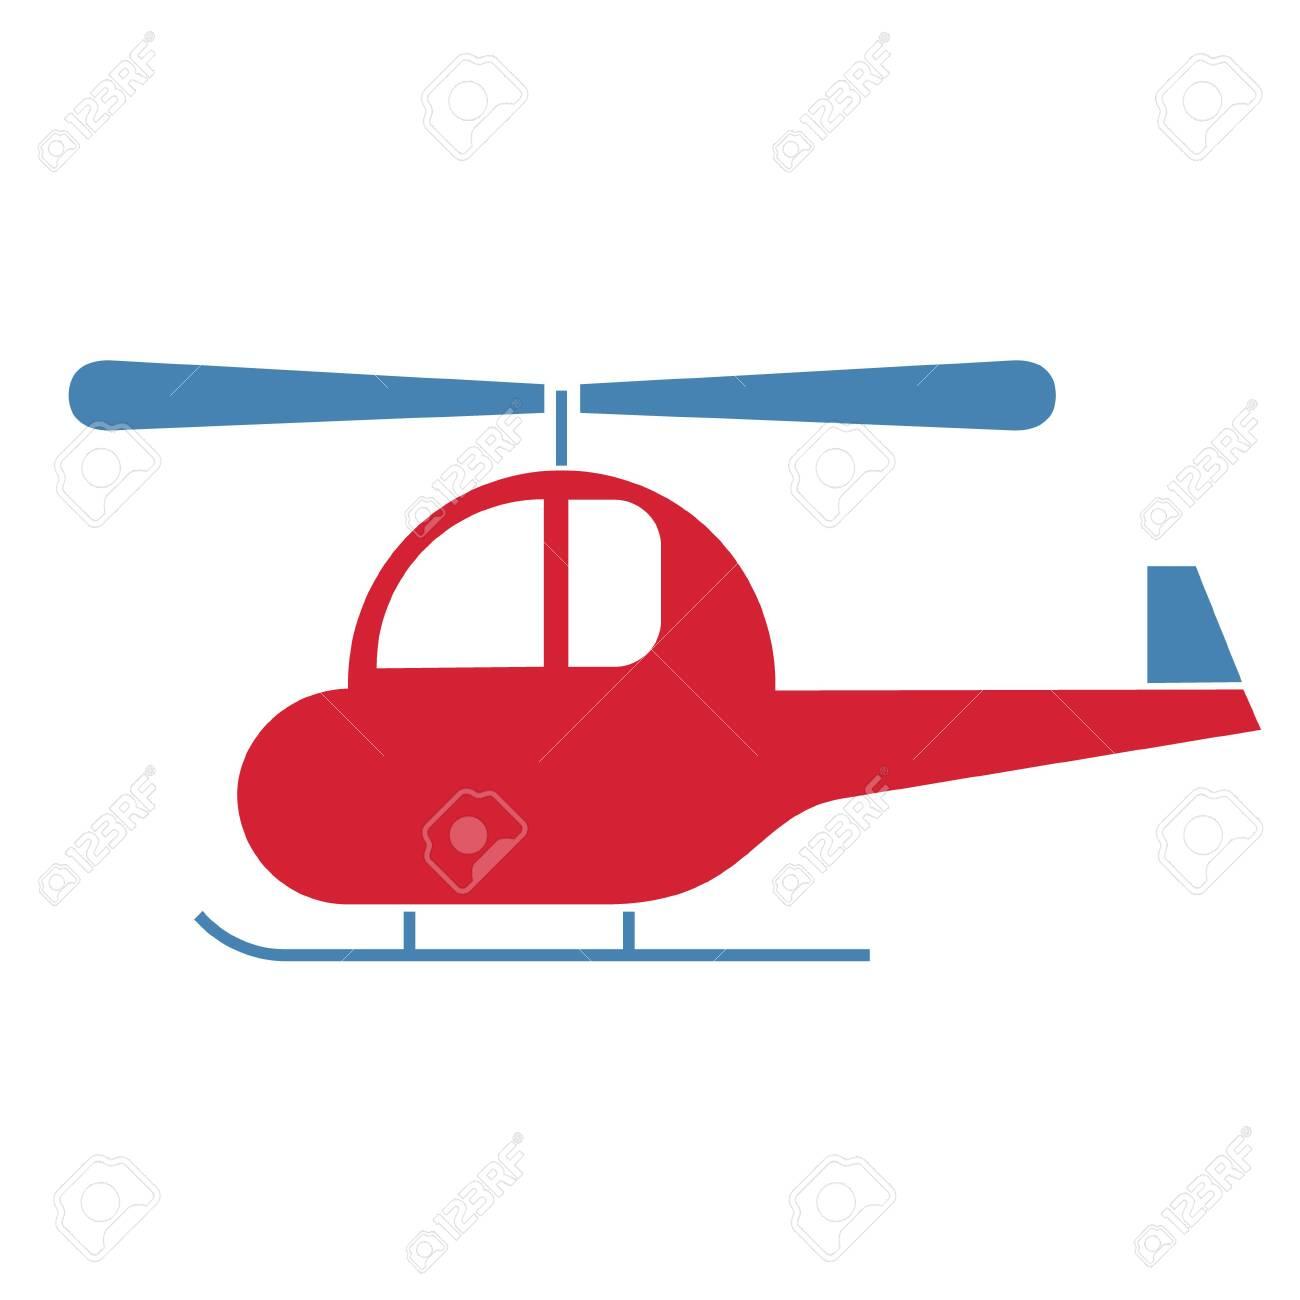 helicopter simlple art geometric illustration  Icon, graphic